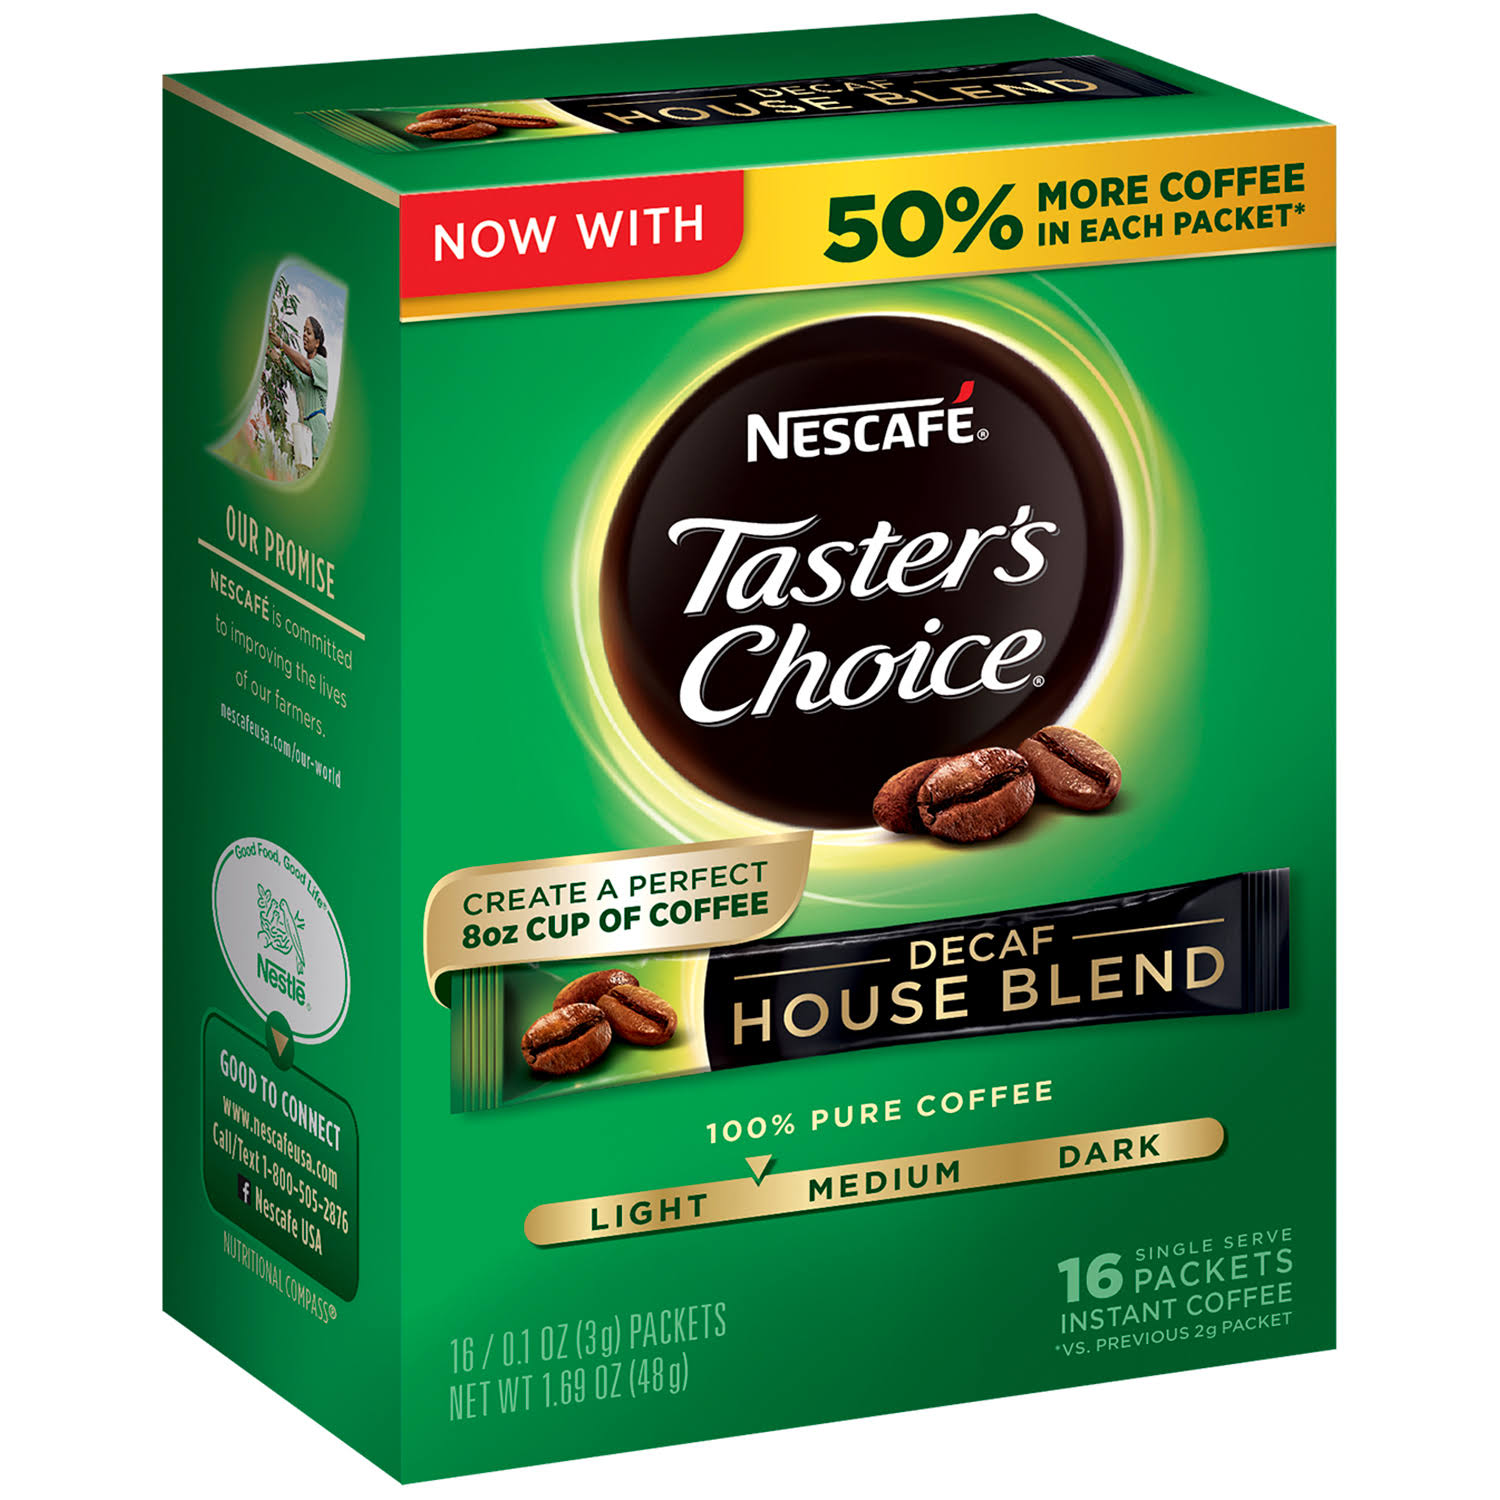 Nescafe Taster's Choice Decaf House Blend Instant Coffee Single Serve Sticks - 1.69oz, x16